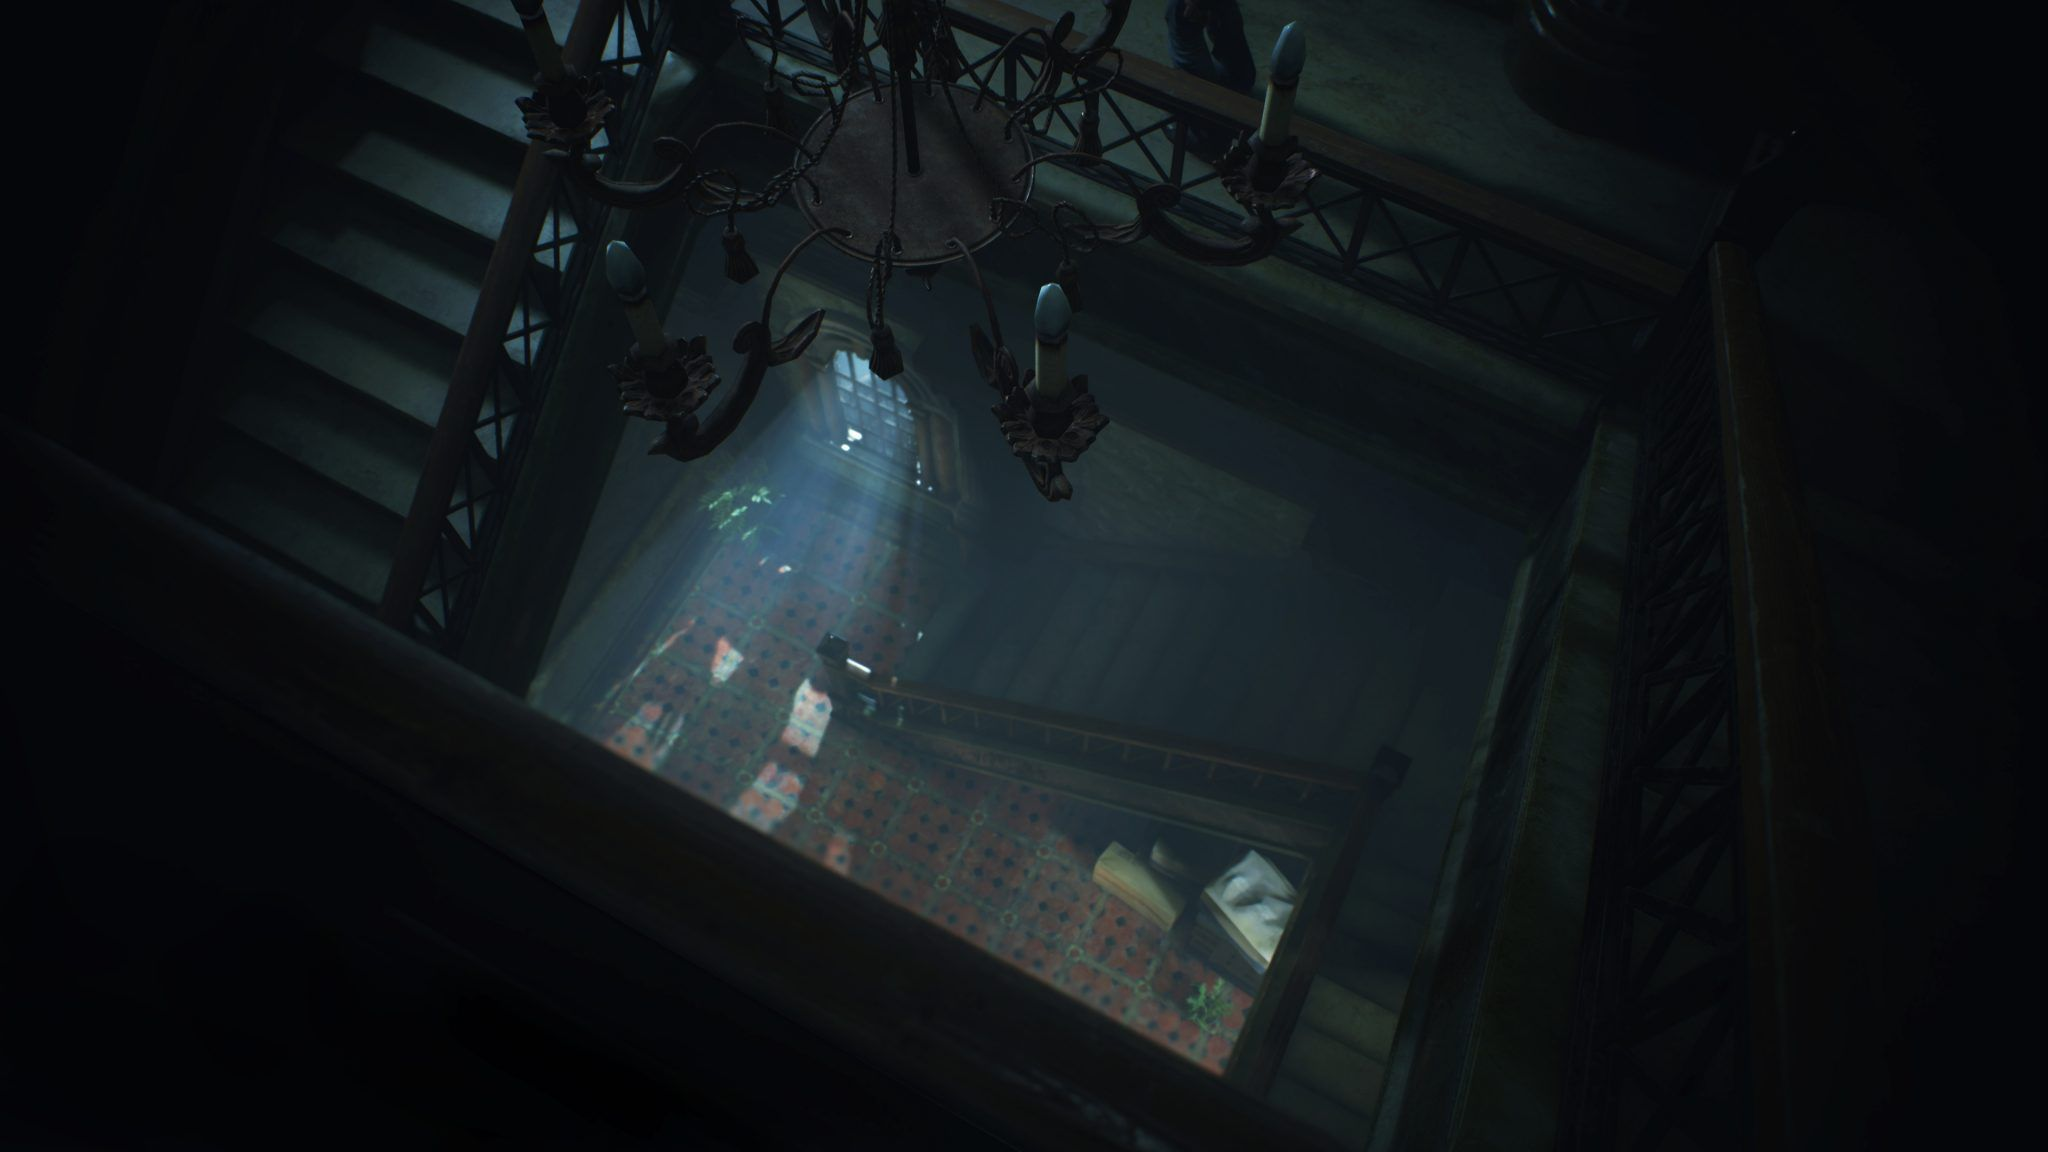 Resident Evil 2 Remake Official 4k Screenshots Give A New Look To Raccoon City Resident Evil Xbox One Games Resident Evil 2 Ps4